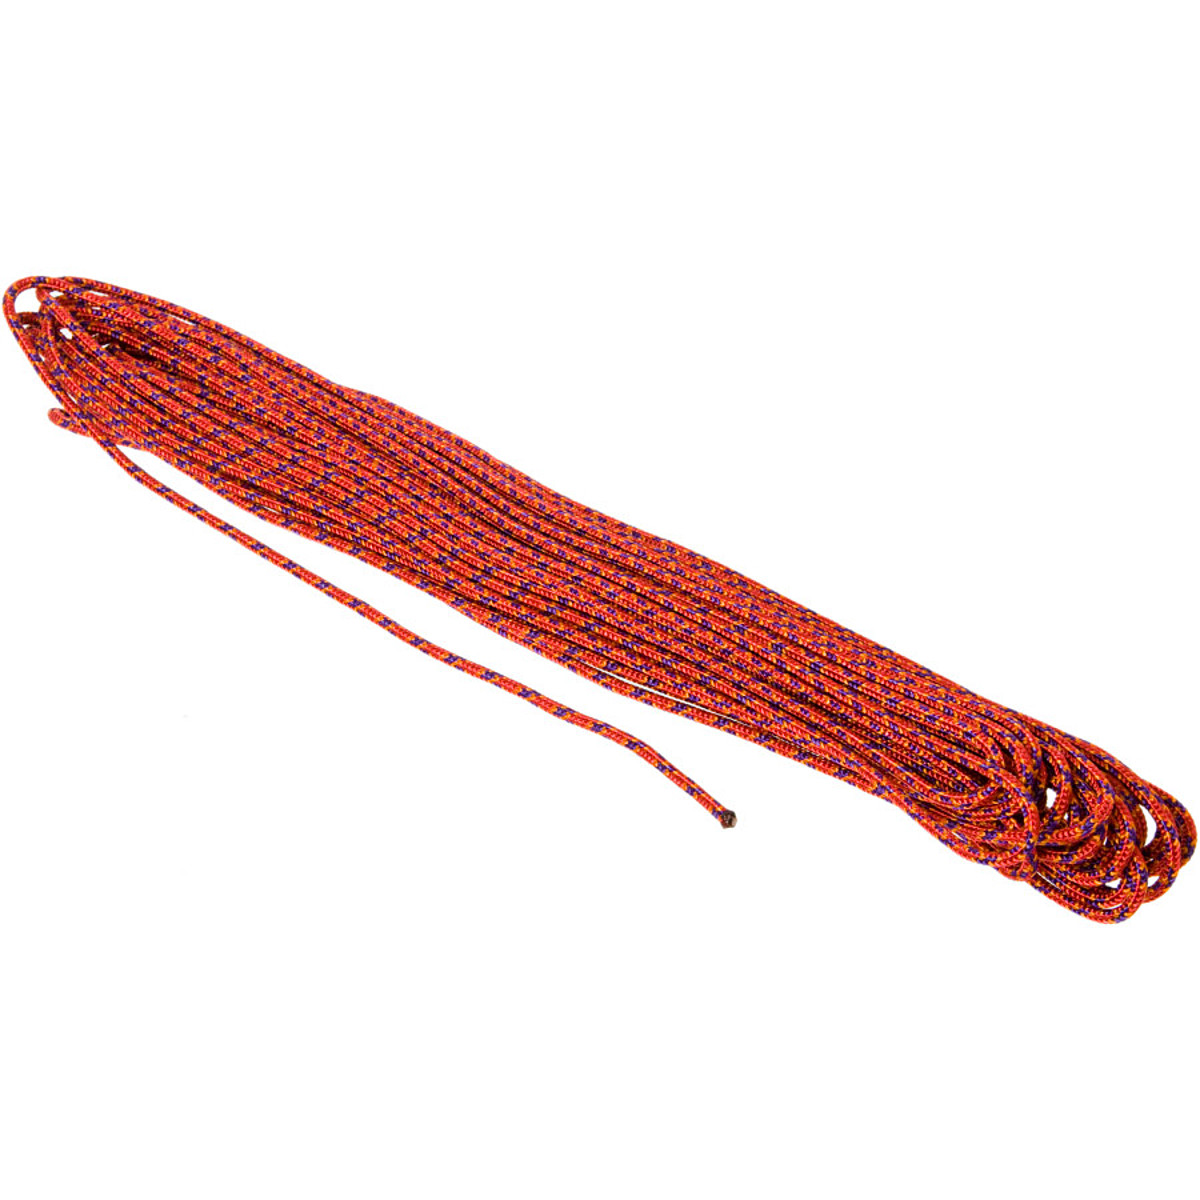 BlueWater Ropes 3mm Accessory Cord